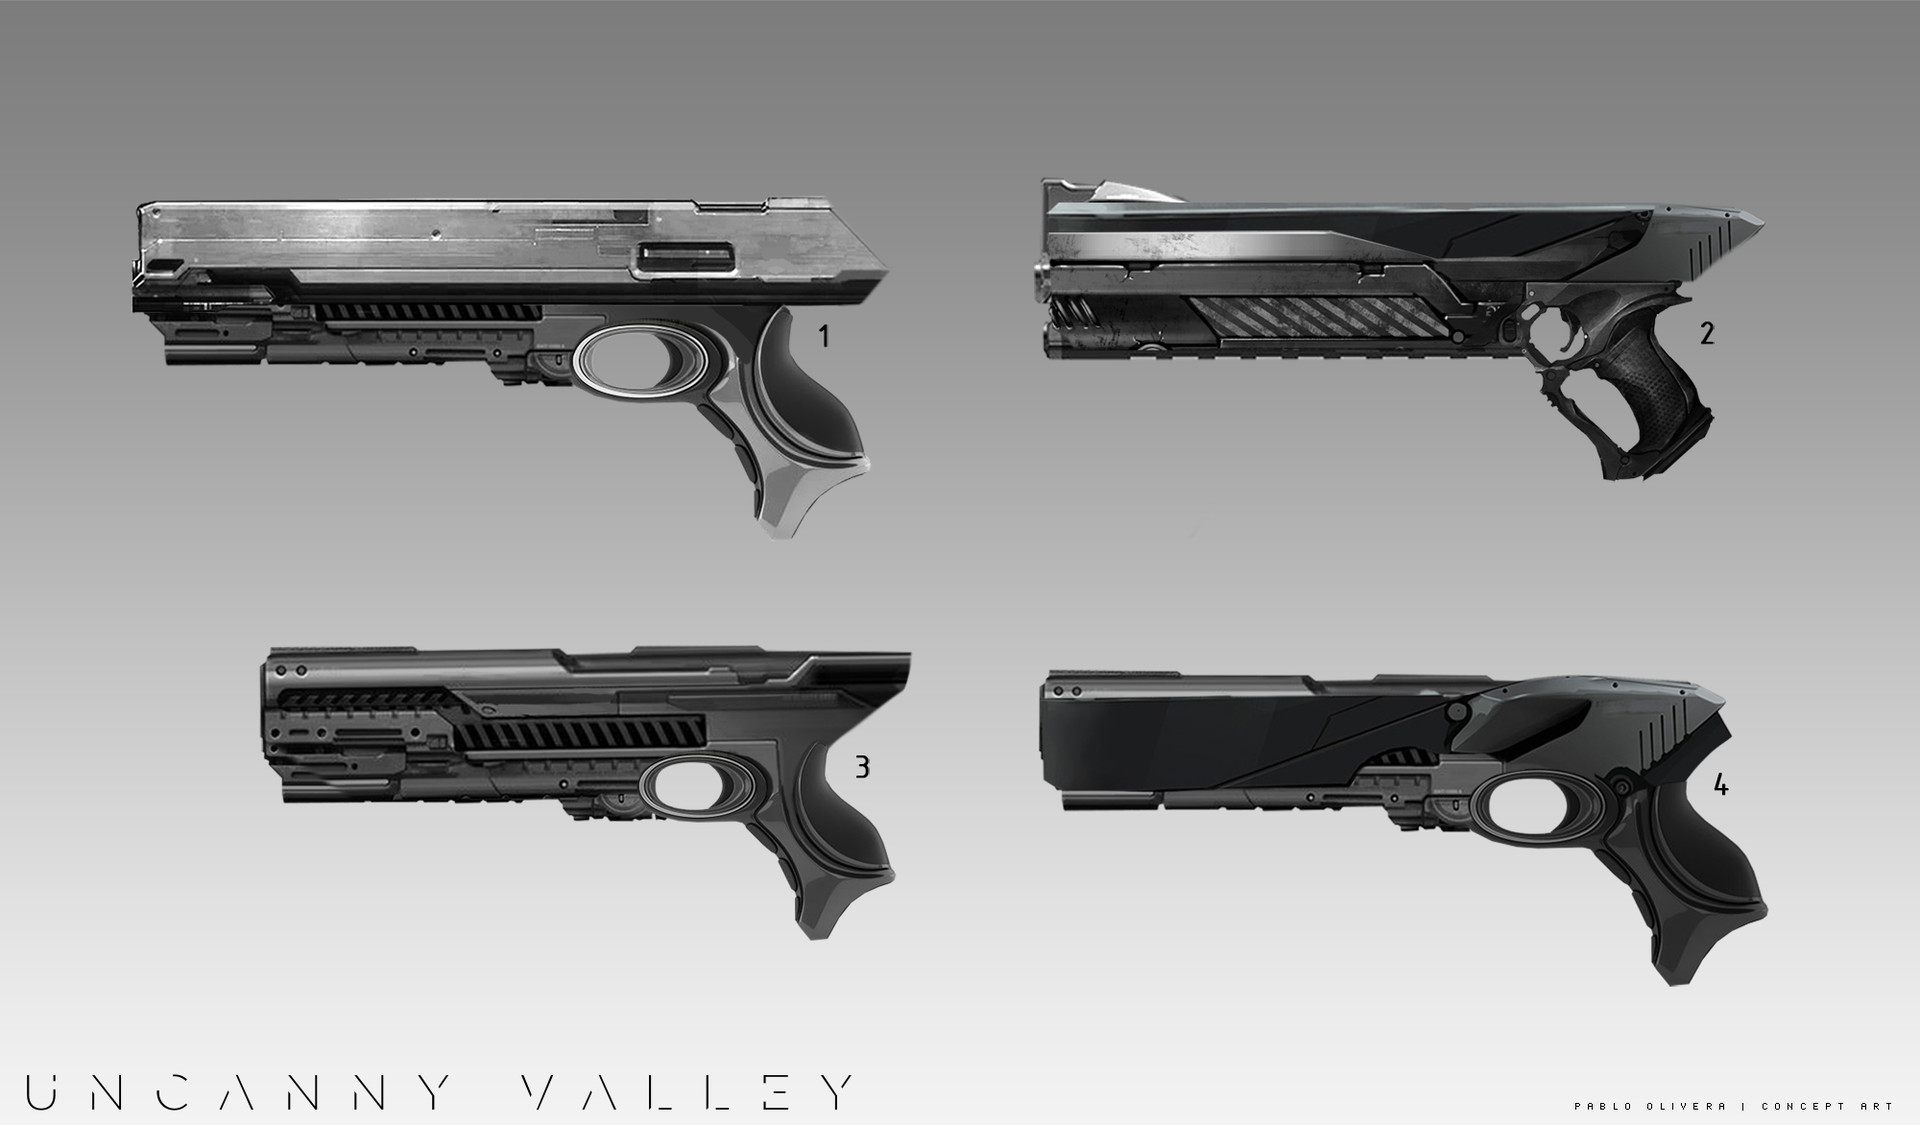 Pablo olivera uncanny valley weapons todas 02